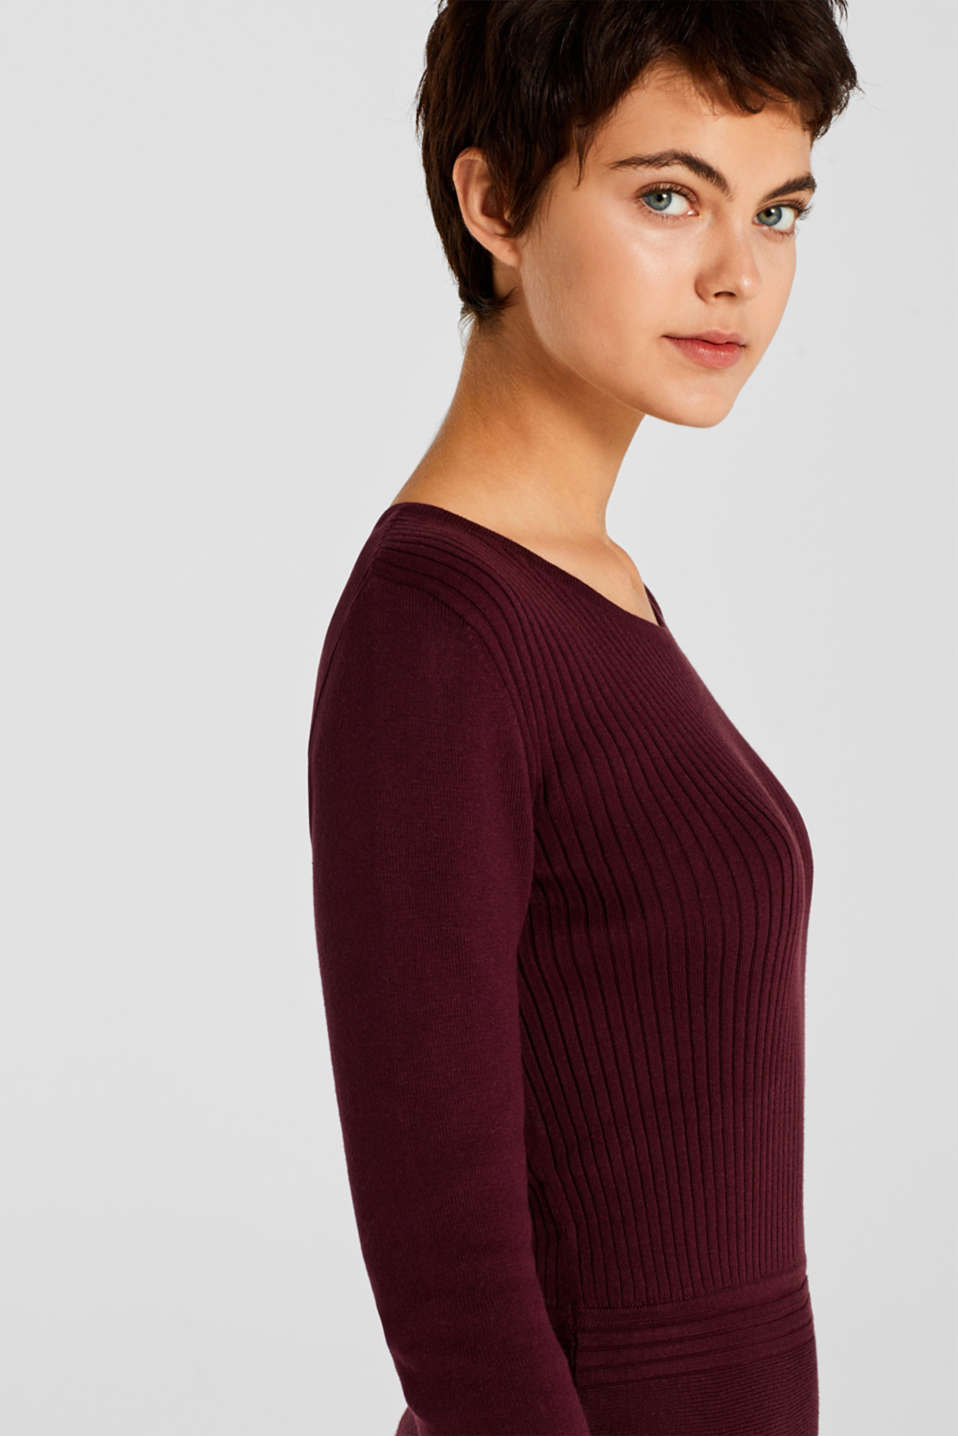 Knit dress with a ribbed texture, BORDEAUX RED, detail image number 5